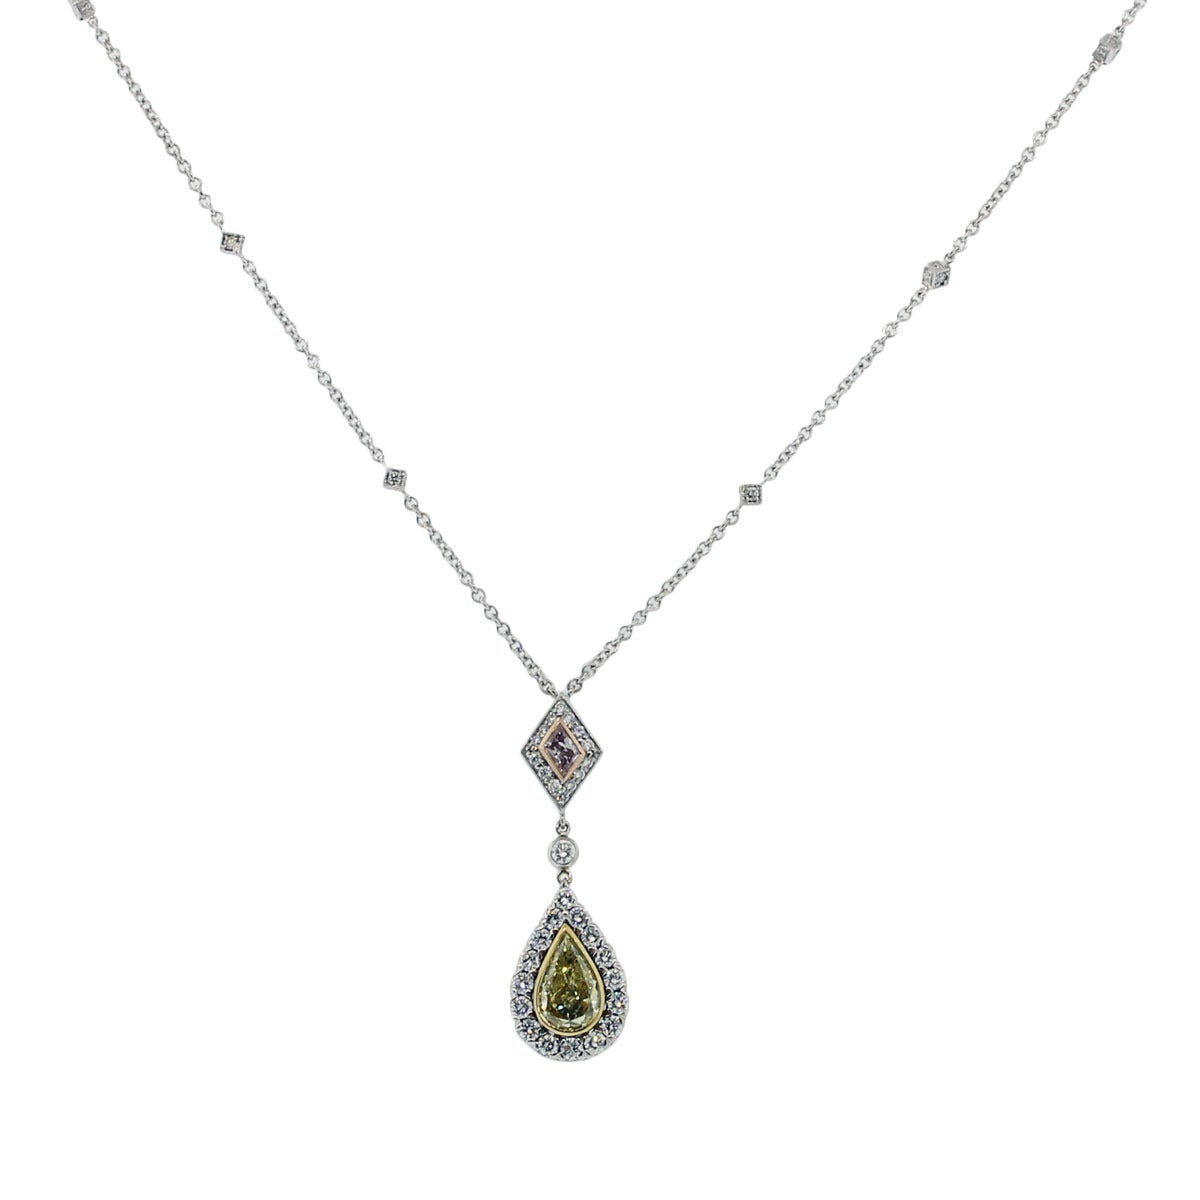 Brand: Christopher Designs Style: 18k Tri Gold Diamond Necklace Material: 18k Tri Gold Diamond Details: Approximately 2.45ctw of Crisscut, Pear shape and Trapezoid shape diamonds. Diamonds are Fancy Yellow, Fancy Purple and G/H in color and VS in